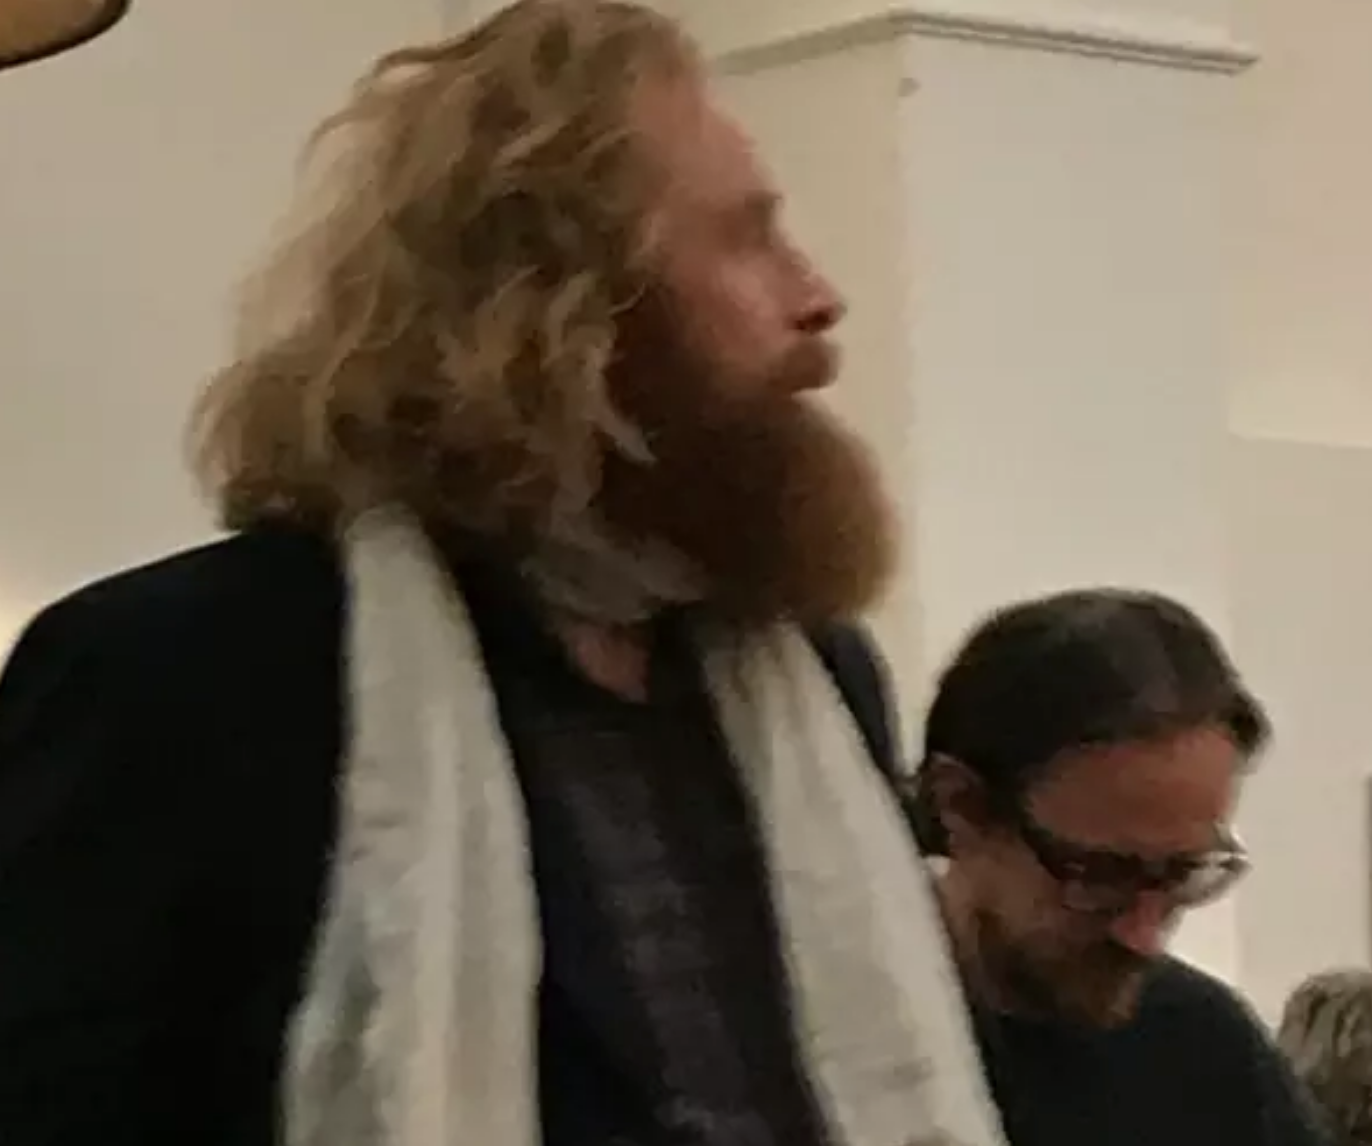 Sneaky Game Of Thrones Set Pic Seemingly Confirms Tormund's Fate